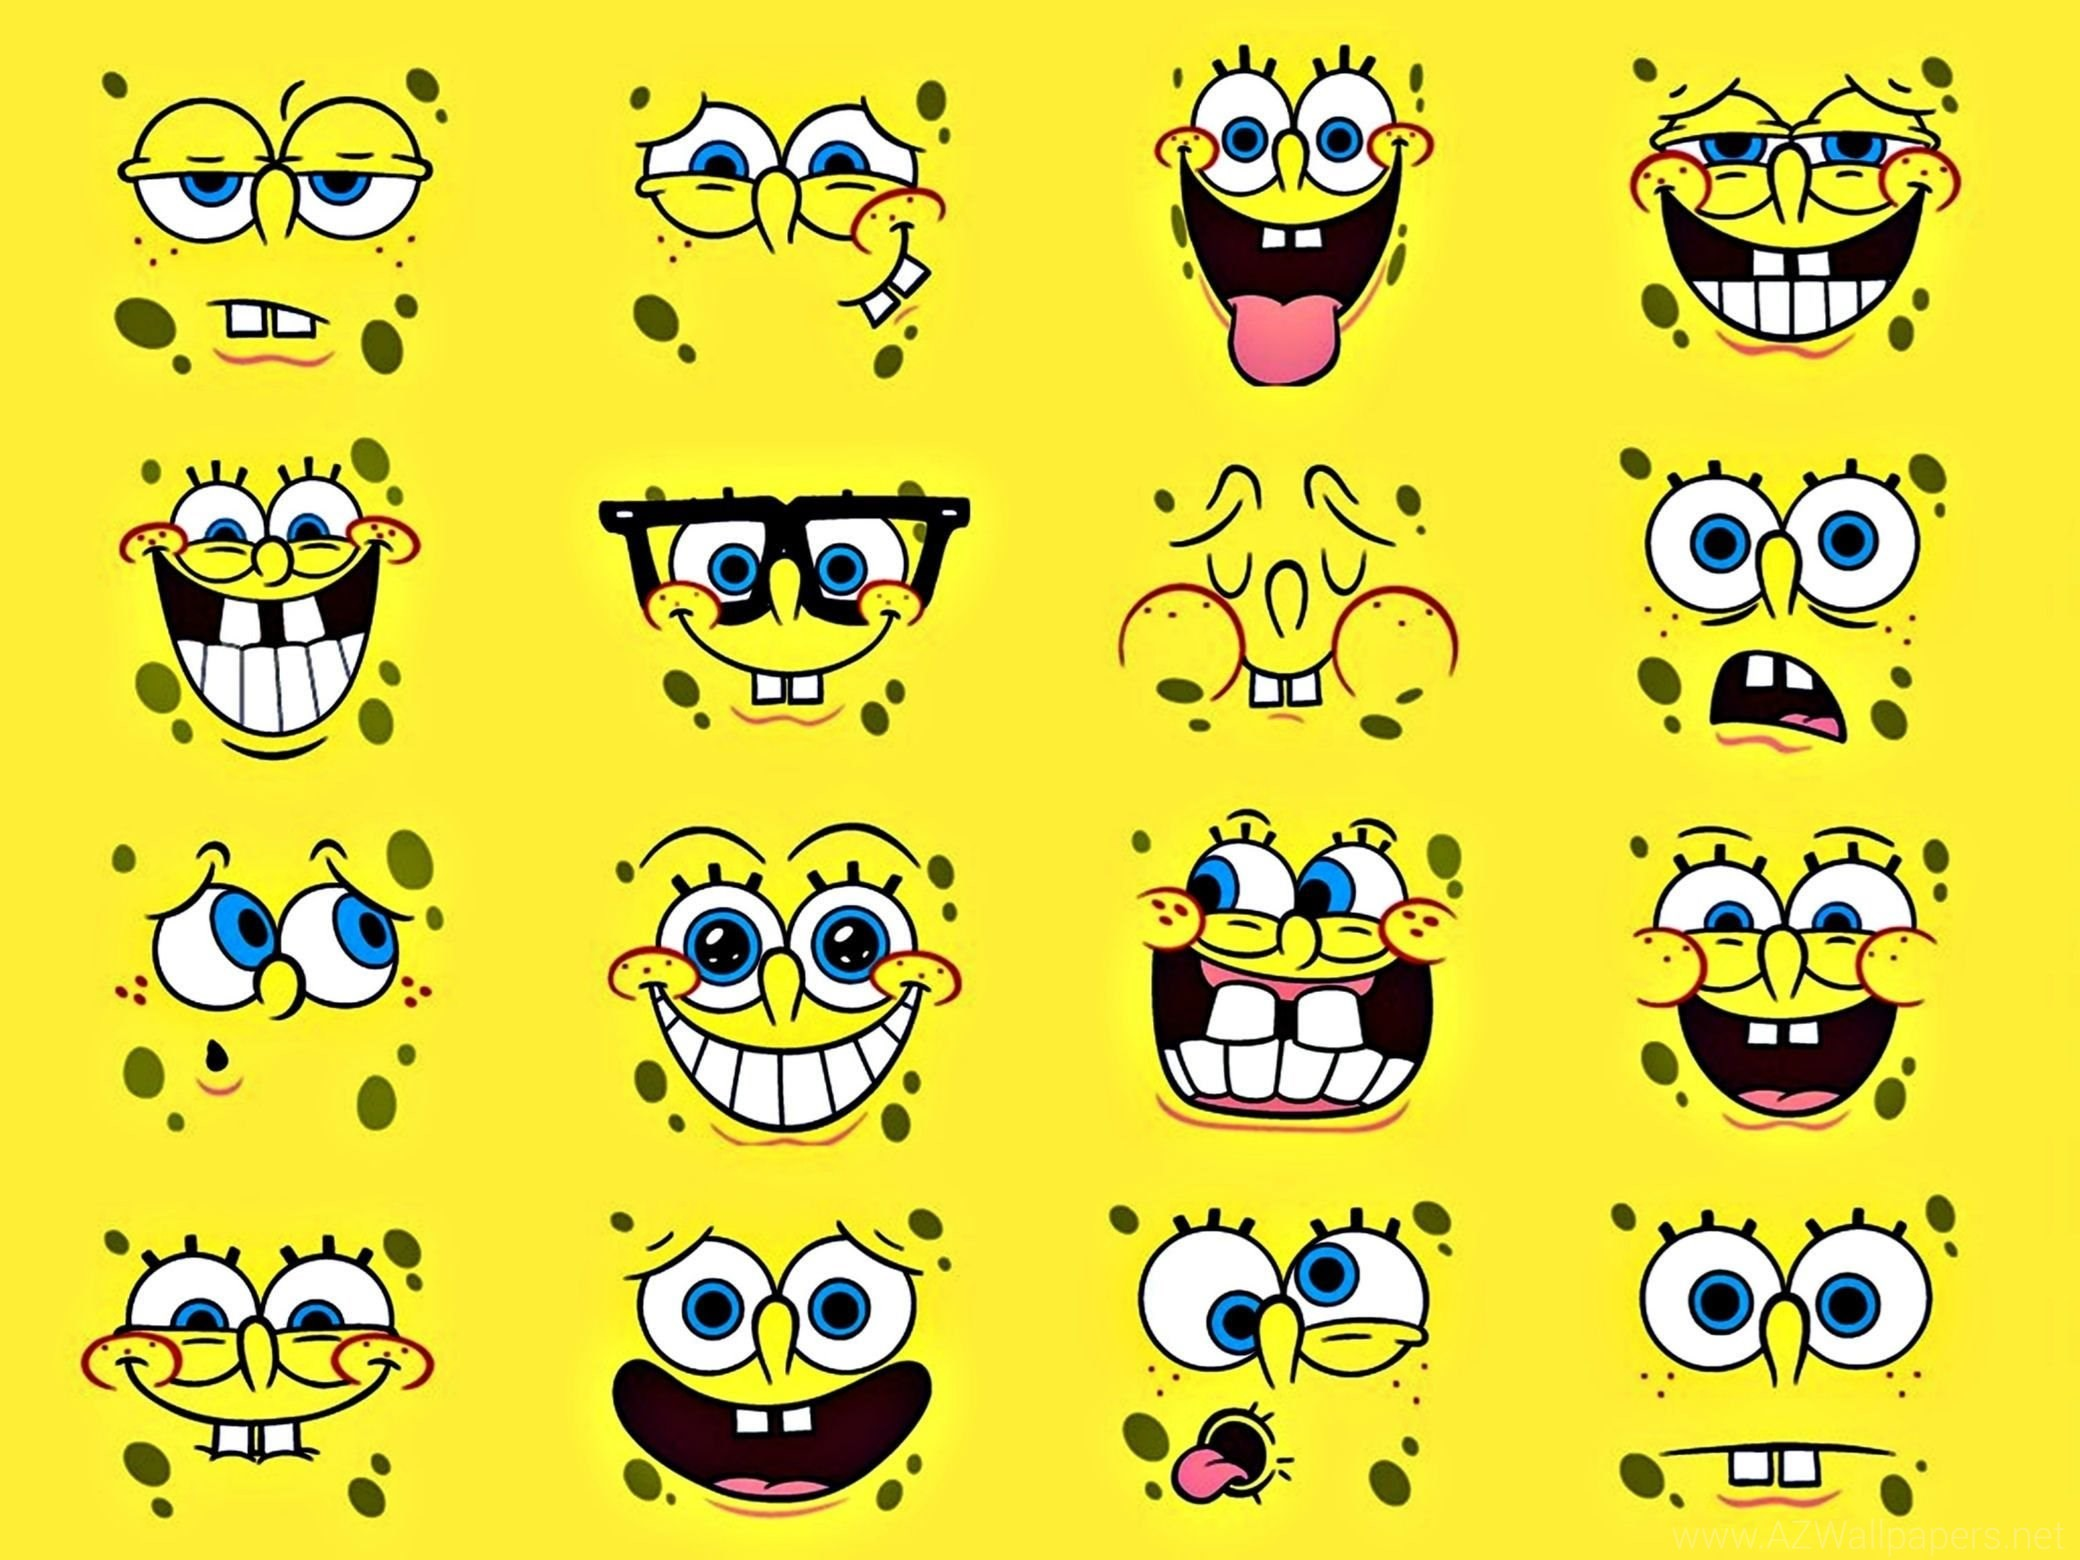 2080x1560 Face Spongebob Squarepants Anime HD Wallpapers Picture